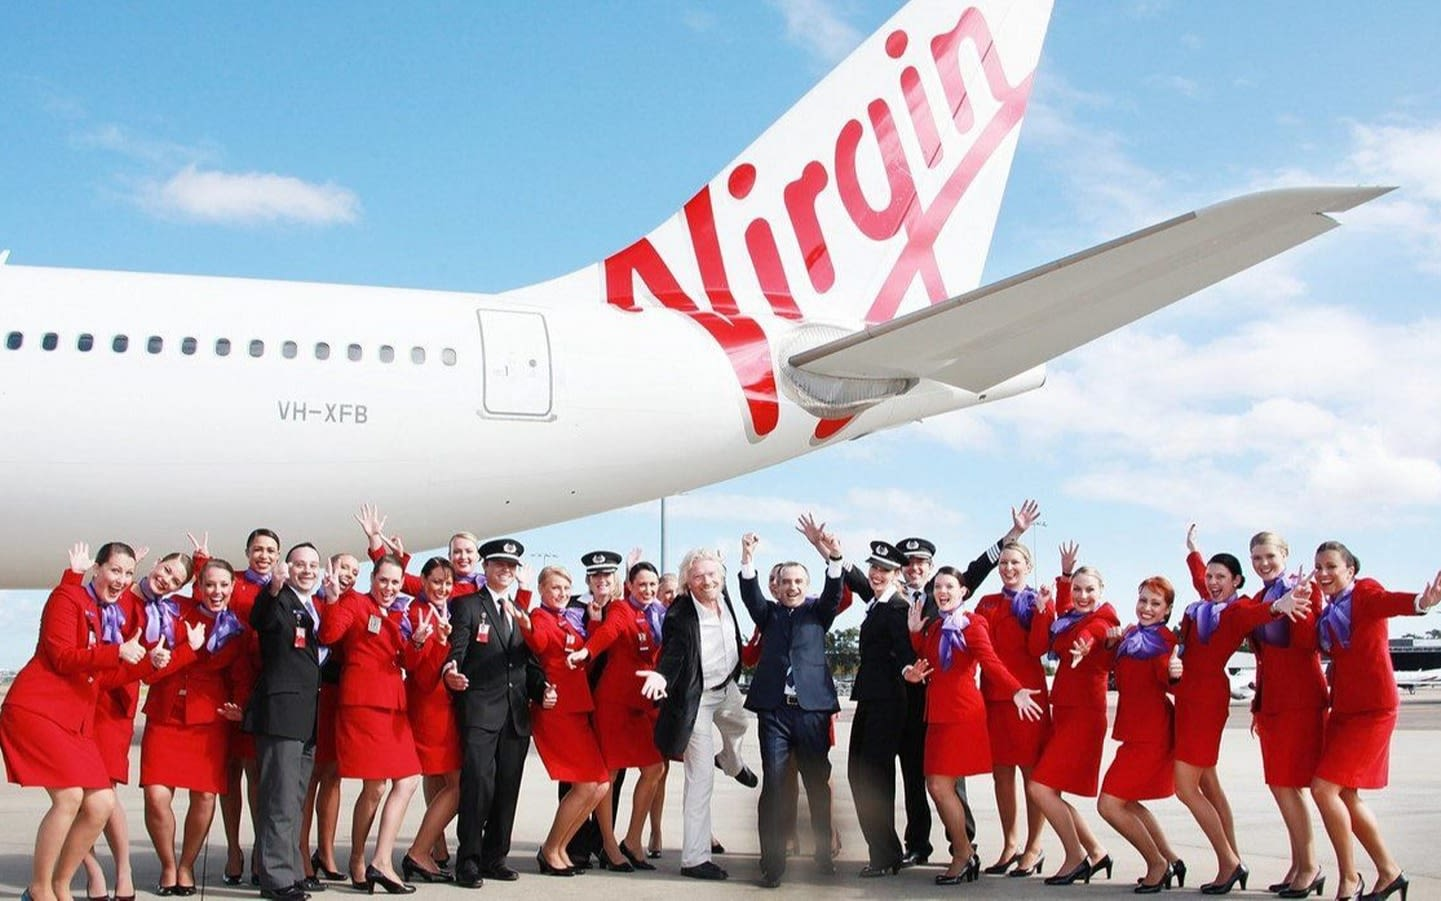 Richard Branson with a group of Virgin Australia cabin crew and pilots in fun pose with the tail end of a Virgin aeroplane behind them